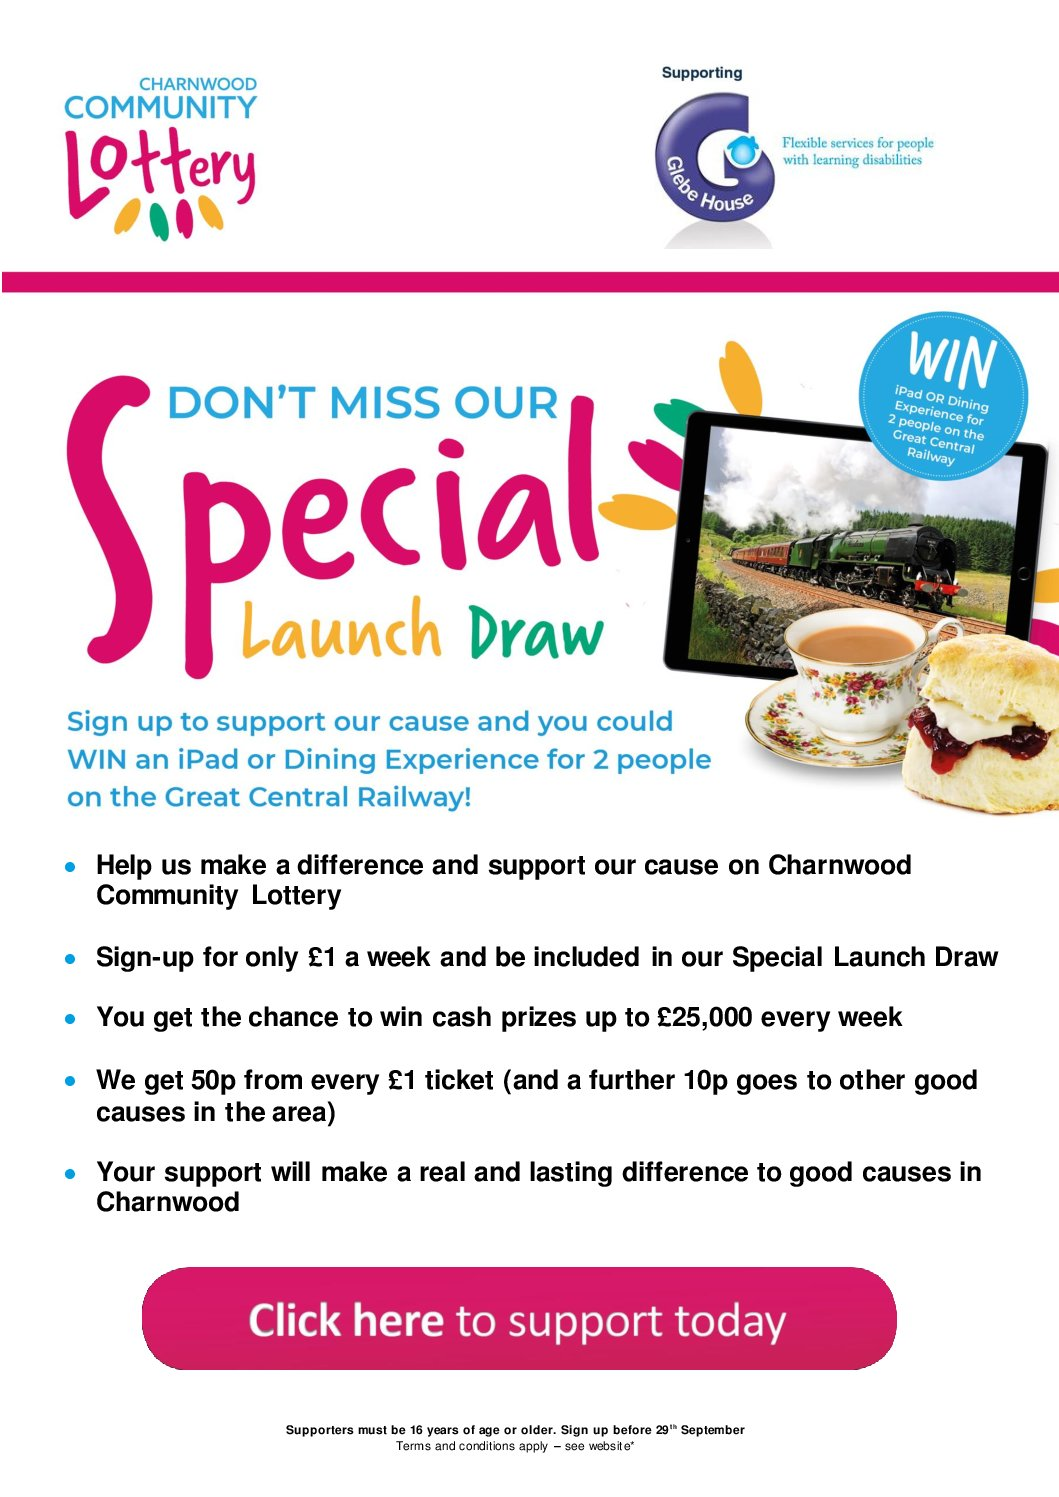 Don't miss Charnwood's Special Launch Draw